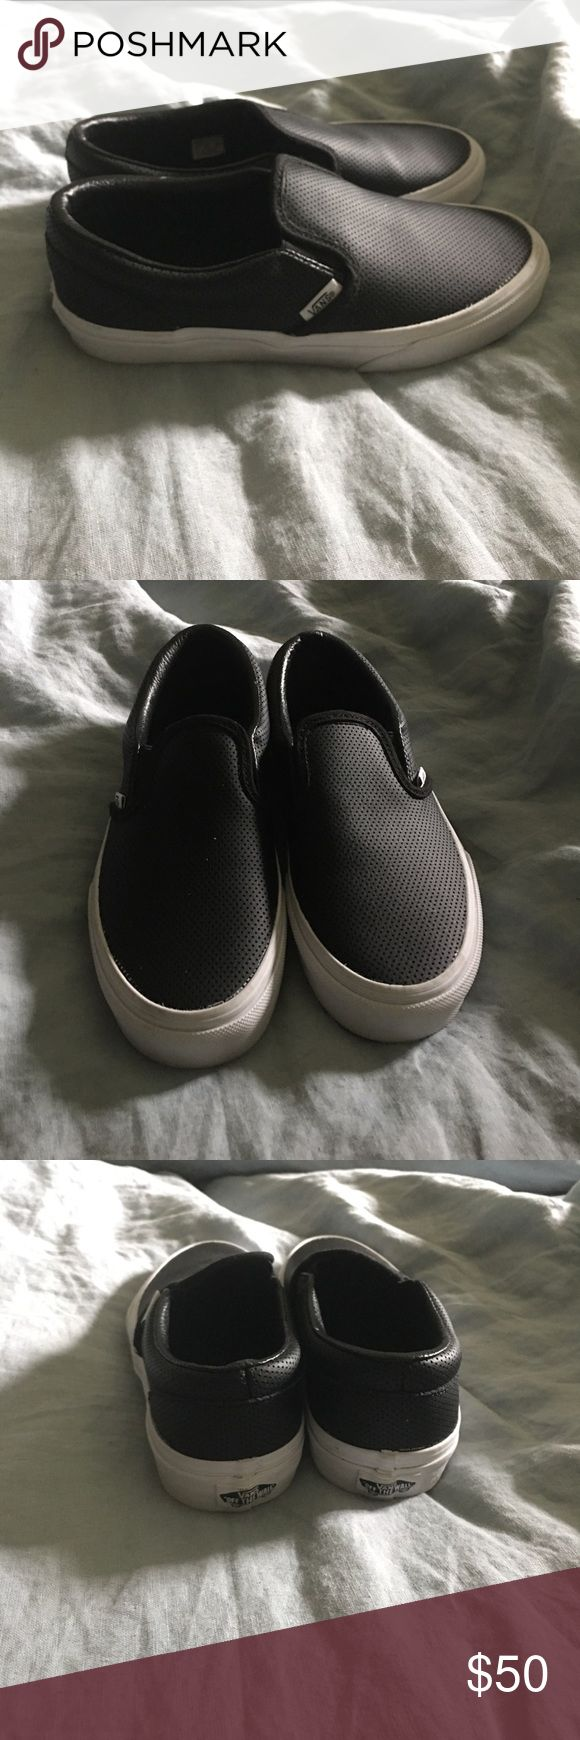 Black faux leather slip on vans Black faux leather slip on vans. Brand new never worn. Super cute they were just half a size too big for me. Vans Shoes Sneakers